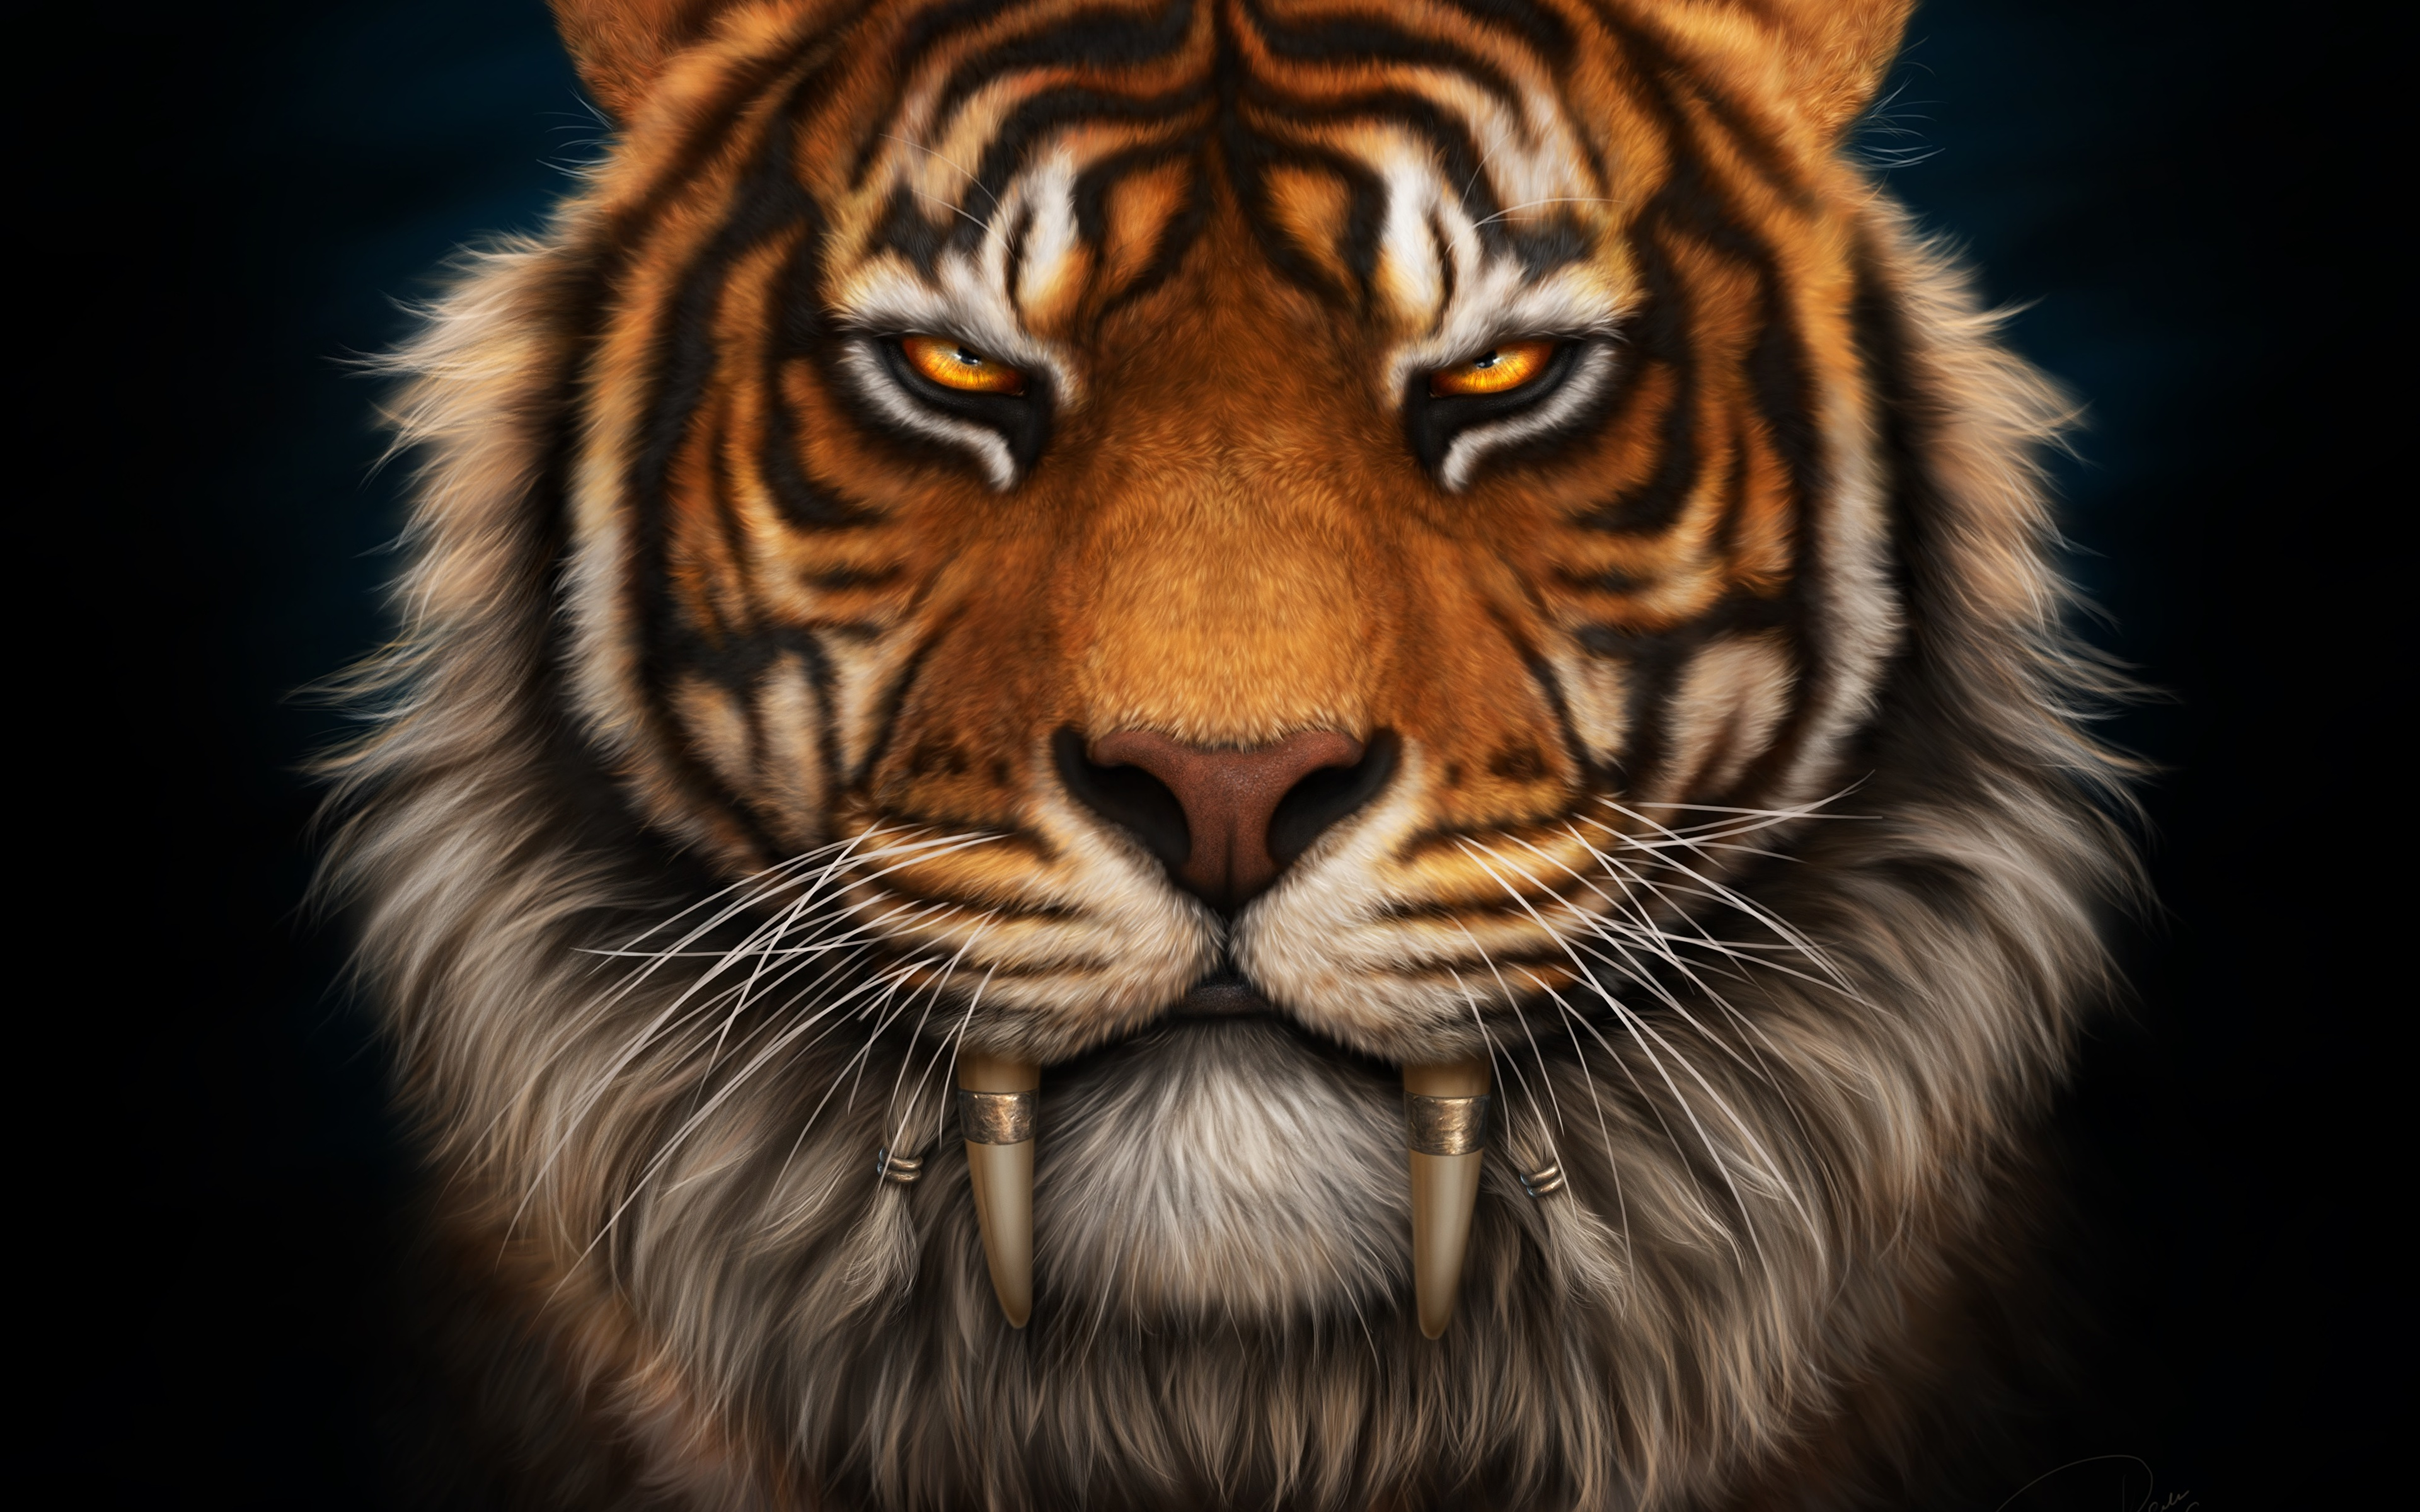 Picture Tigers Canine tooth fangs Saber-toothed Whiskers Snout Glance Animals Black background 3840x2400 tiger animal Staring